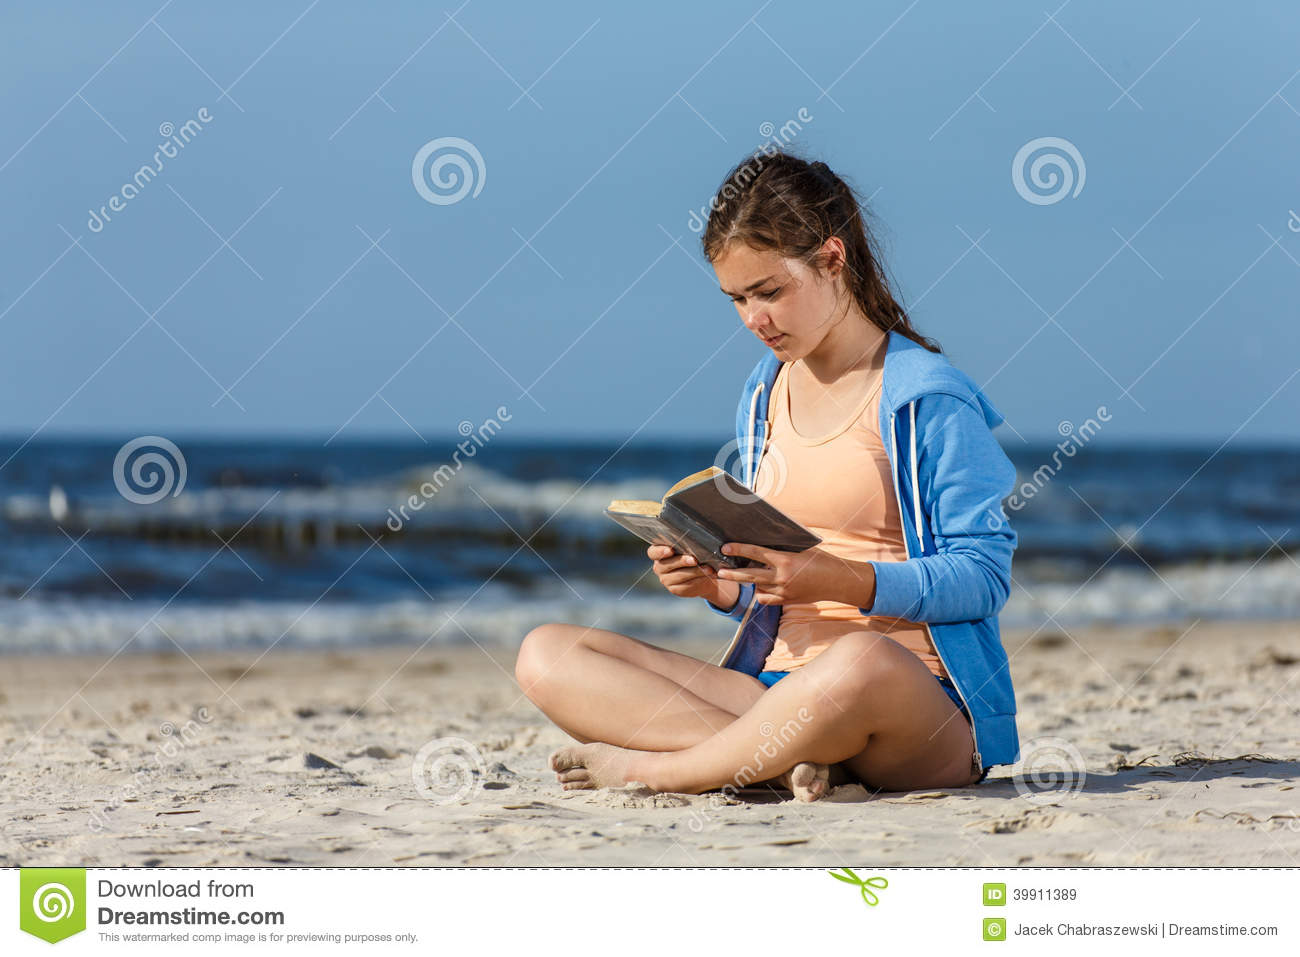 Idea and nude beach girl with man reading book are mistaken